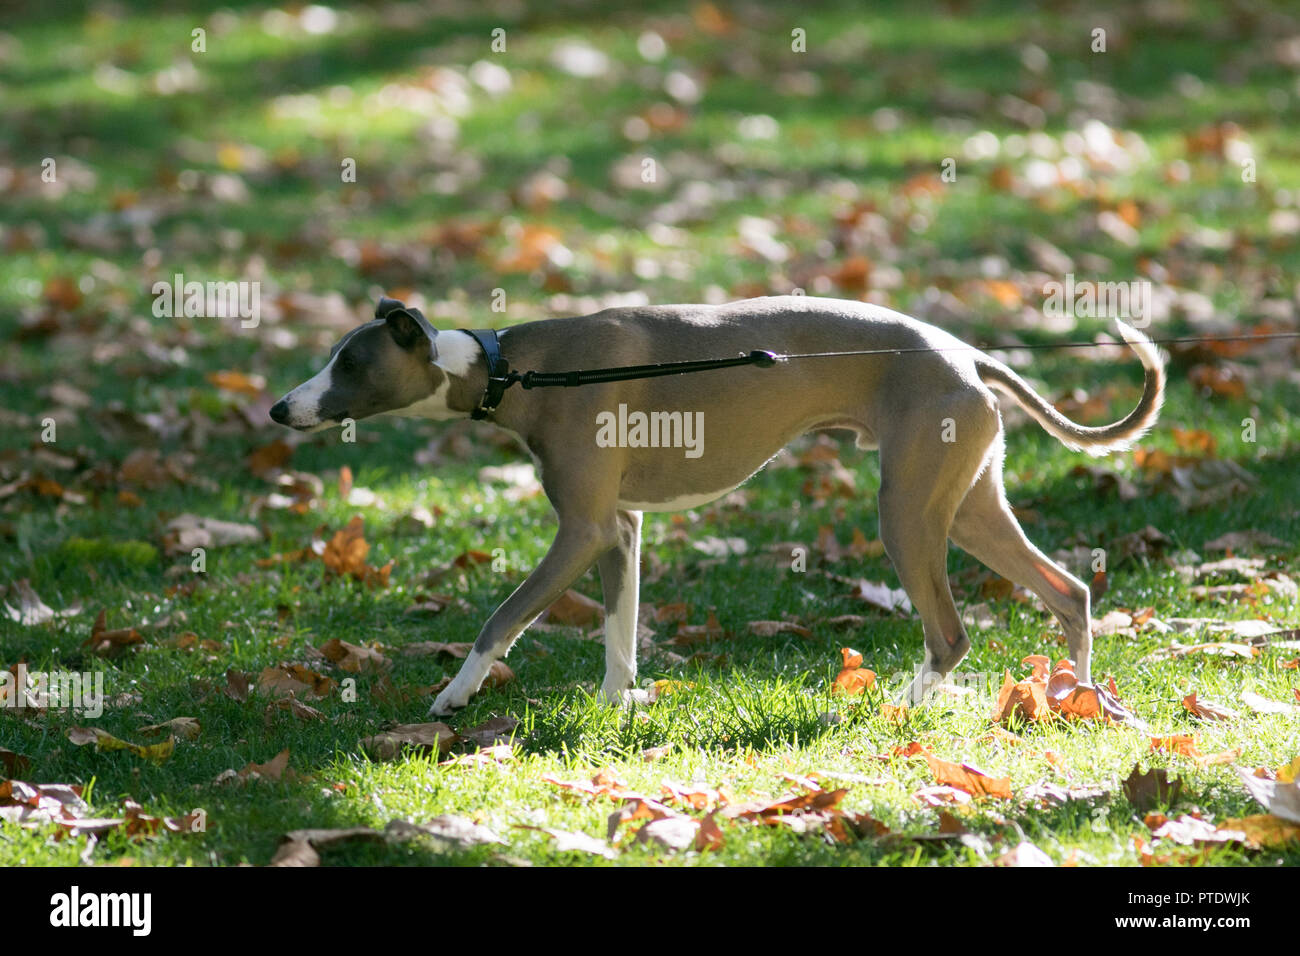 London UK. 9th Ocrober 2018. A dog on a lead enjoy the afternoon  sunshine in Saint James's Park covered in fallen leaves on a warm autumn day as October is forecast to be the hottest month in Seven years as the Indian summer returns Credit: amer ghazzal/Alamy Live News - Stock Image